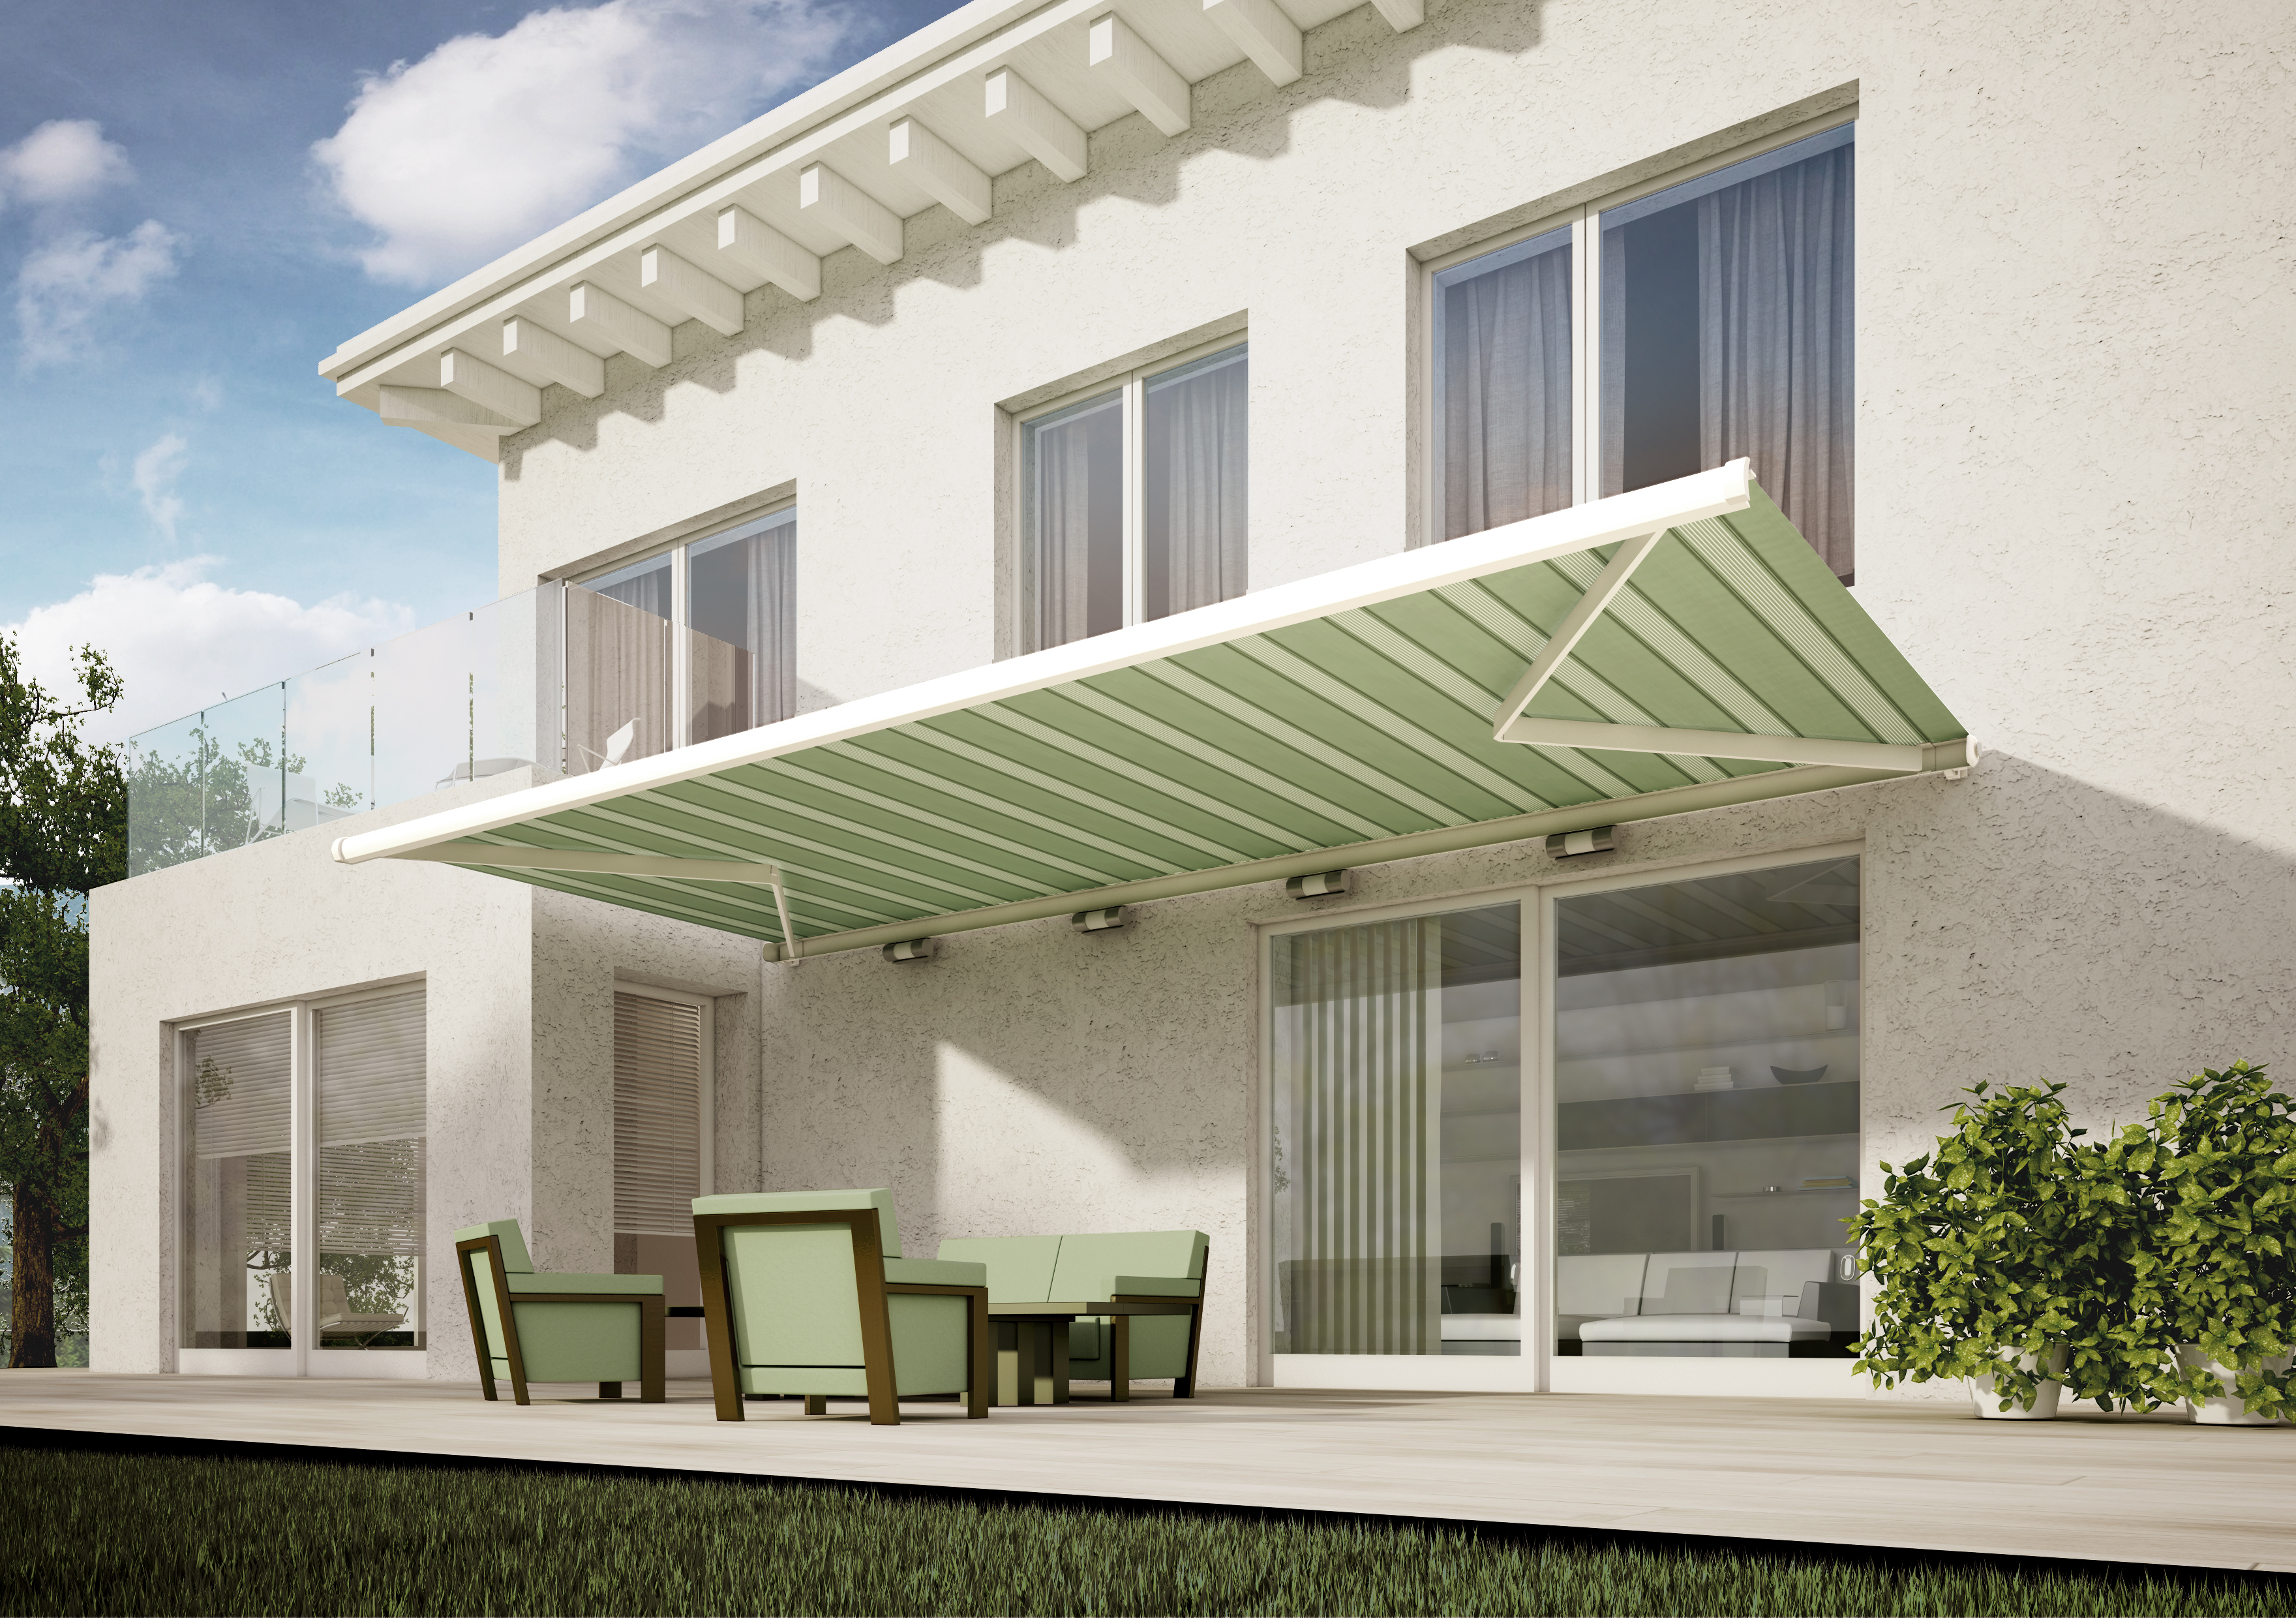 Awning & Canopy Glossary - The Different Types Explained